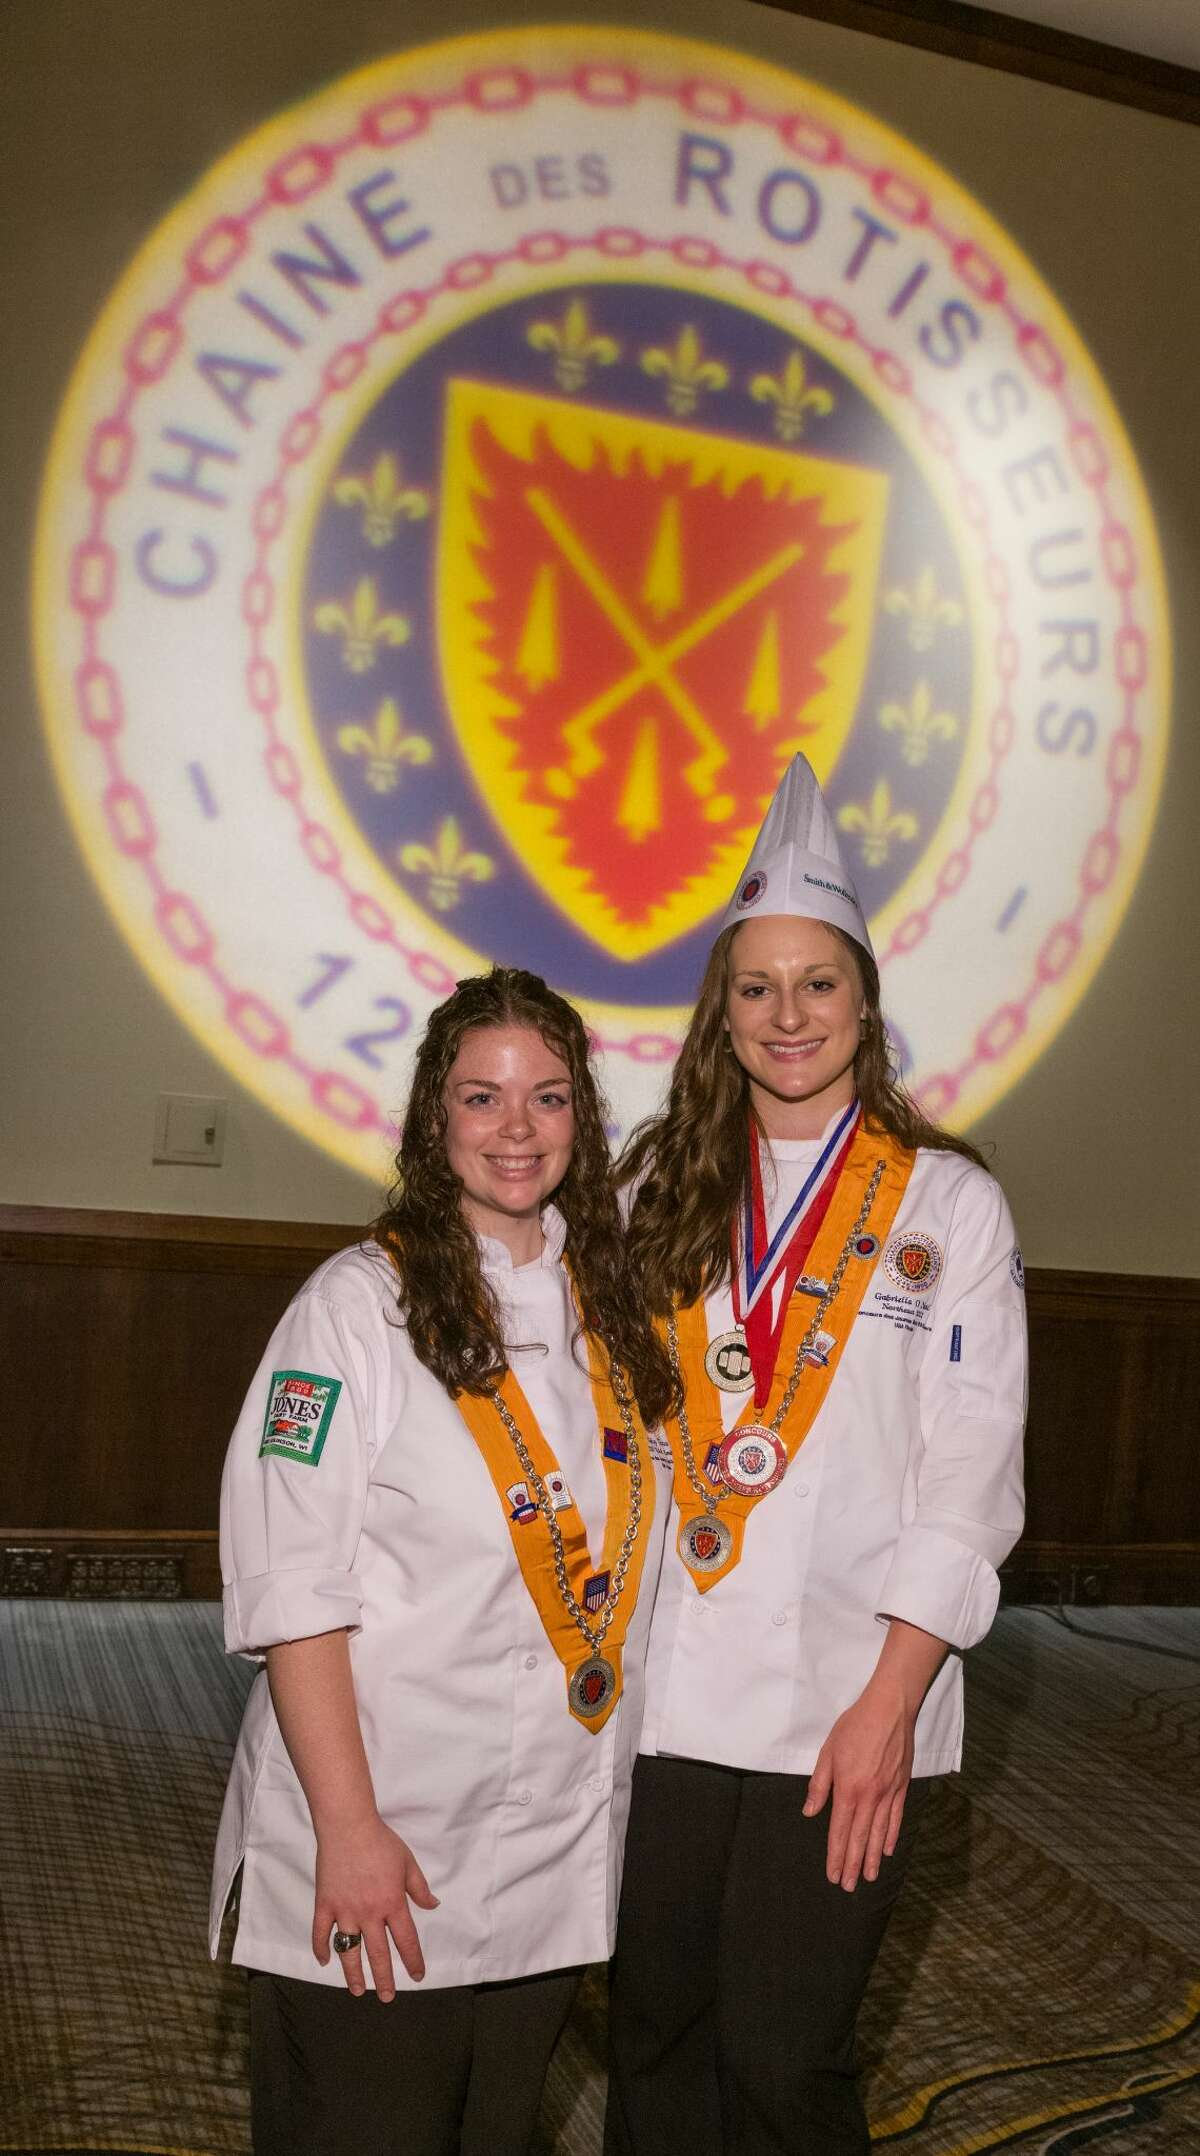 Gabriella O'Neil of Albany, right, won the Young Chef National Competition on June 5, 2021, in Kansas City, Mo. The cook-off is sponsored by the Chaine des Rotisseurs, the oldest culinary organization in the world. As the winner, she will represent the United State in the Chaine's global competition for chefs younger than 27, being held in Paris in September 2021. Also competing for the U.S. in September will be Carly Yezzo of Glenville, left, who won the Chaine's American competition in 2019 but was unable to compete in the international event last year because of the coronavirus pandemic. O'Neil, who trains with Yono Purnomo of Yono's restaurant in Albany, where she previously worked, is on the kitchen staff at 15 Church in Saratoga Springs. Yezzo also works in Saratoga, at Hamlet & Ghost. (Provided photo.)